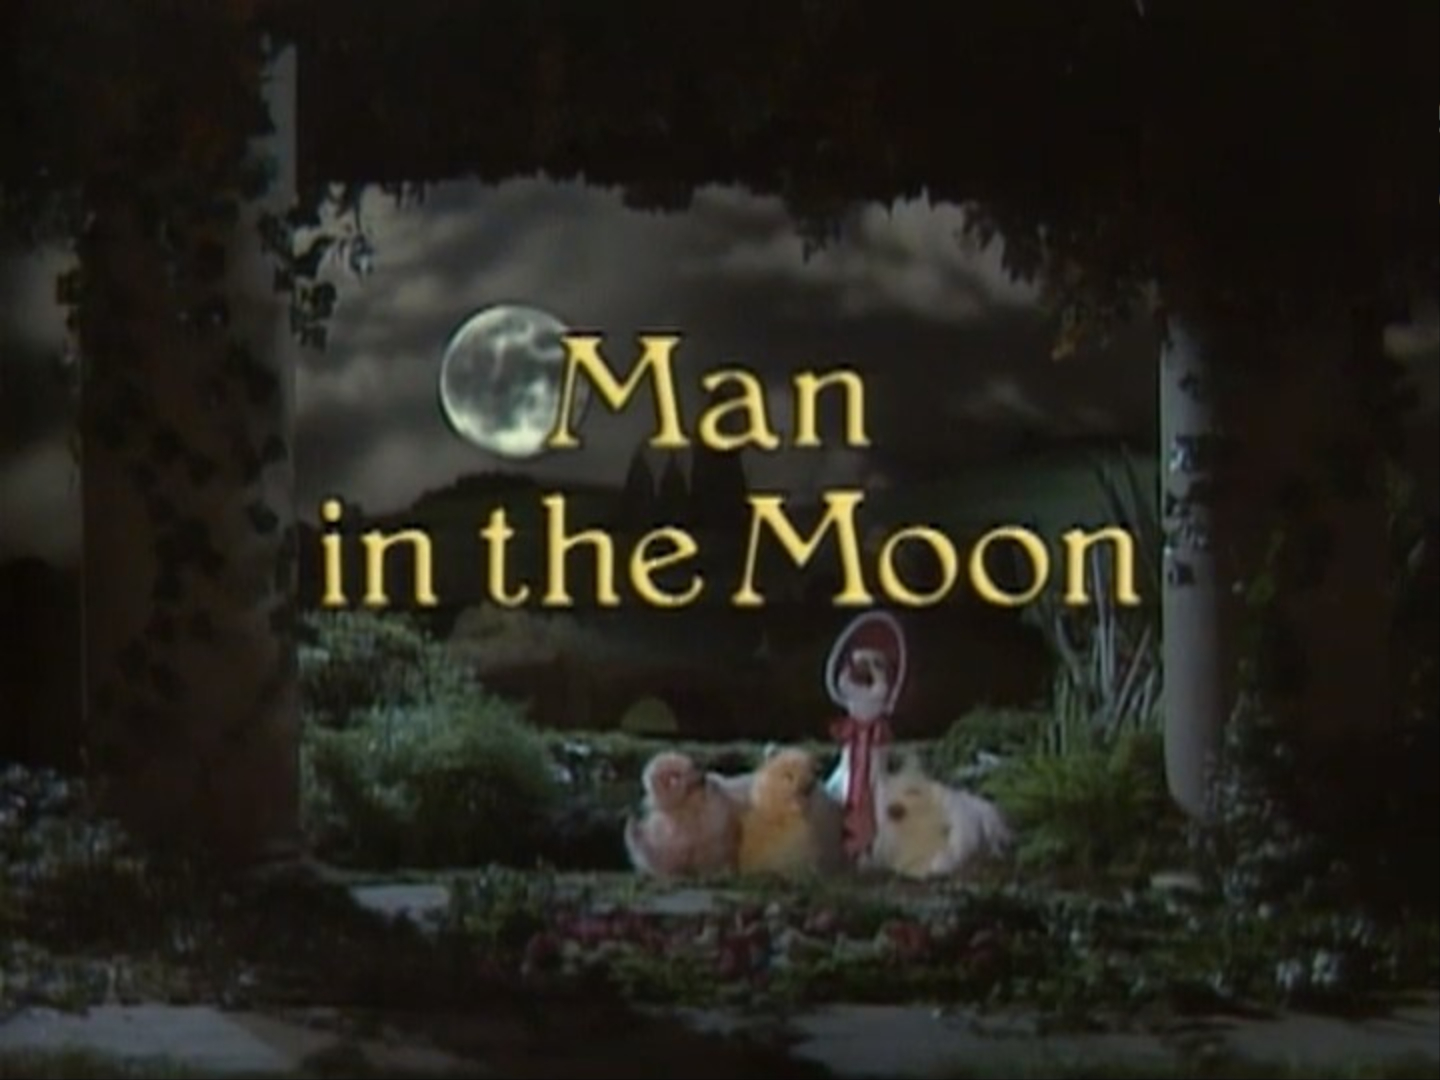 Episode 25: Man in the Moon